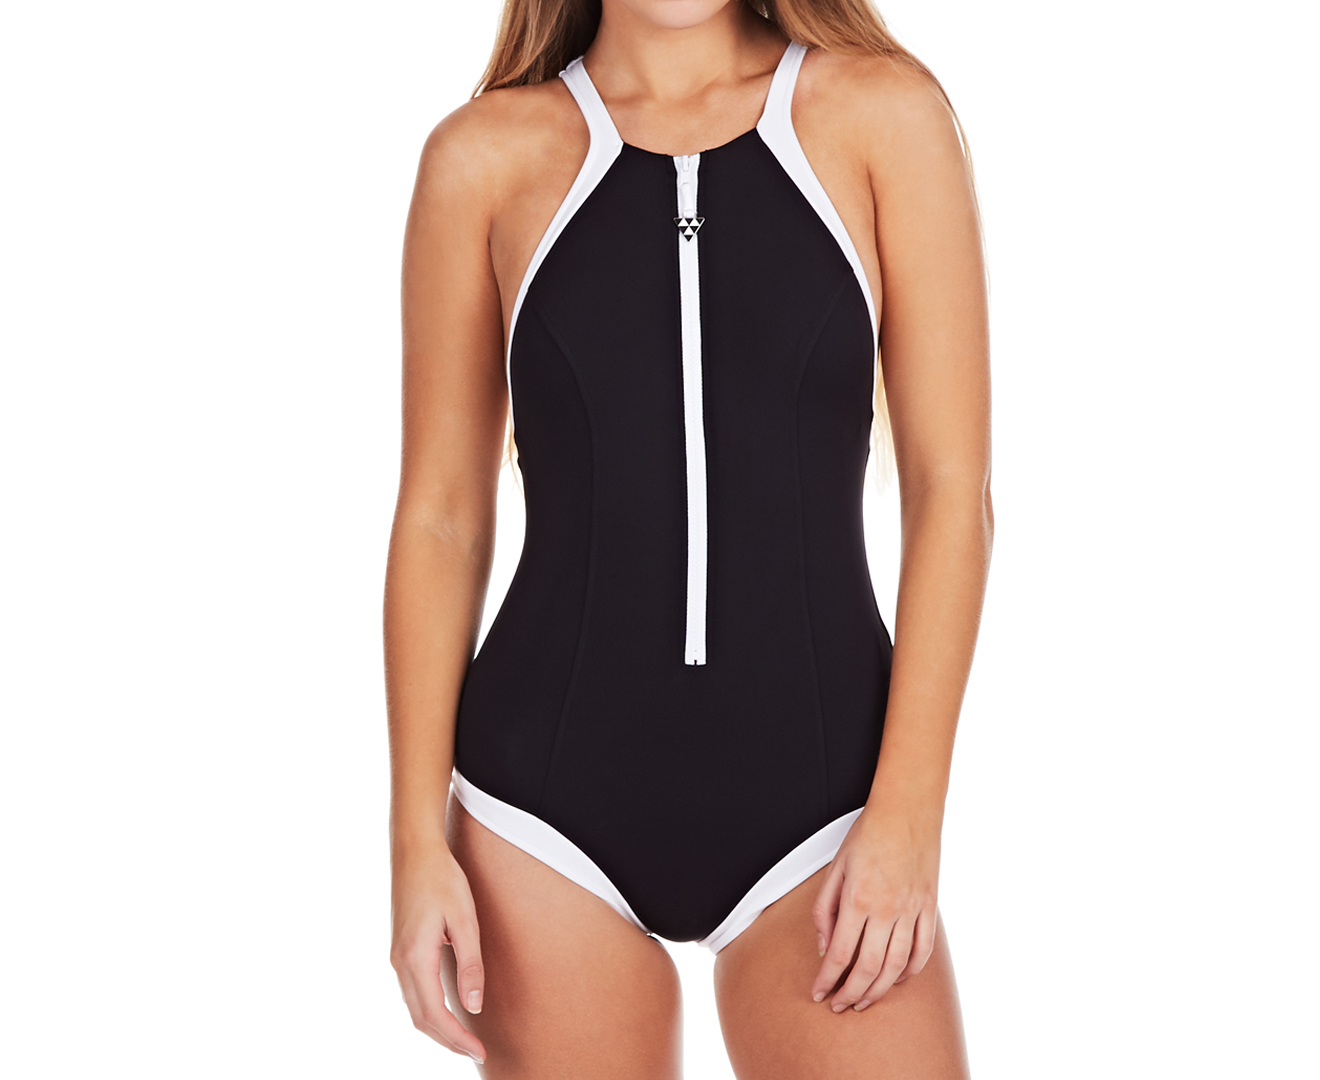 seafolly women 39 s block party high neck maillot black ebay. Black Bedroom Furniture Sets. Home Design Ideas